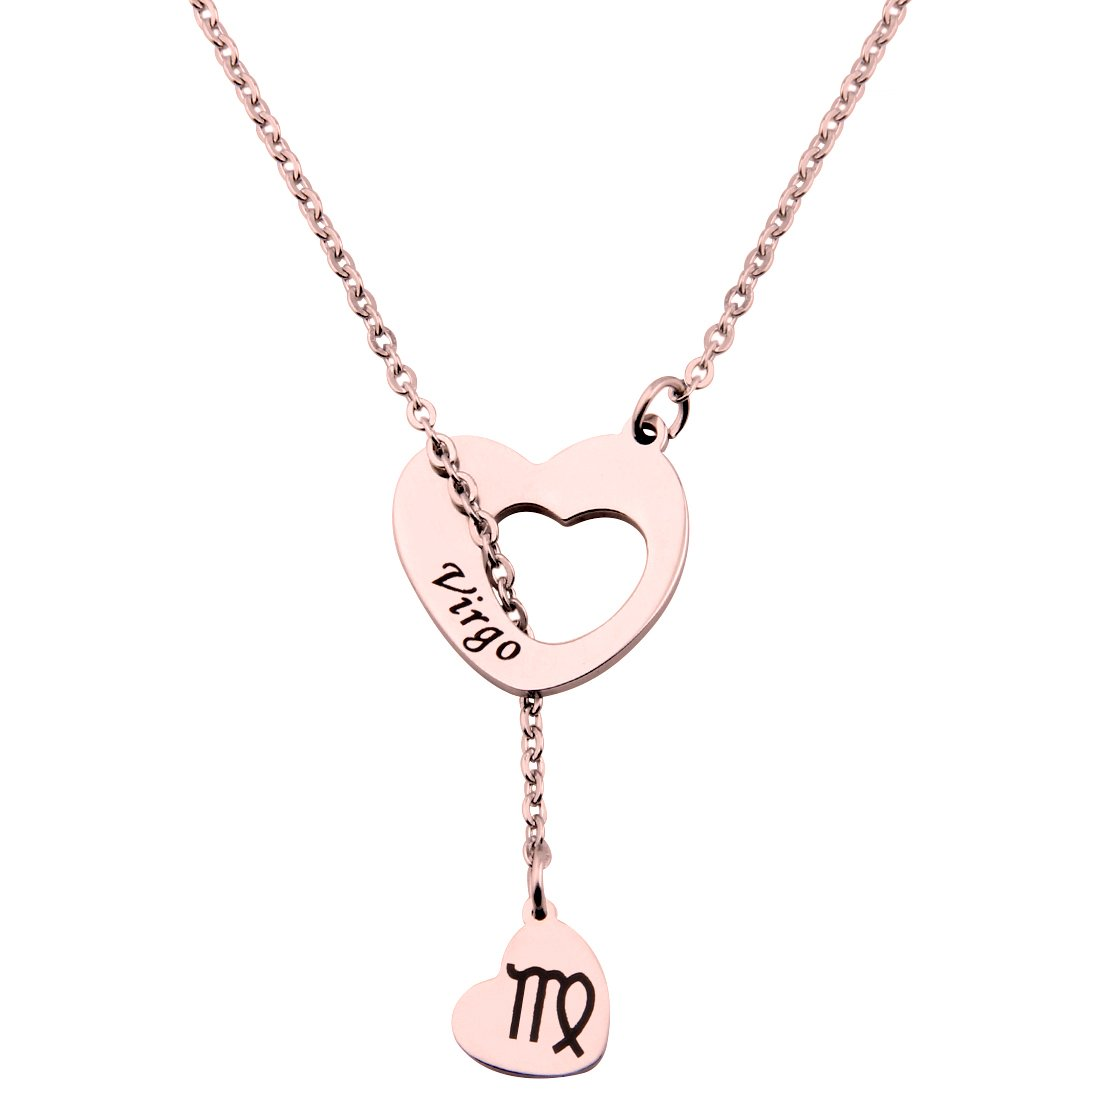 ENSIANTH Rose Gold Zodiac Signs Heart Necklace Stainless Steel Lariat Y Necklace Best Birthday Gift (Virgo)